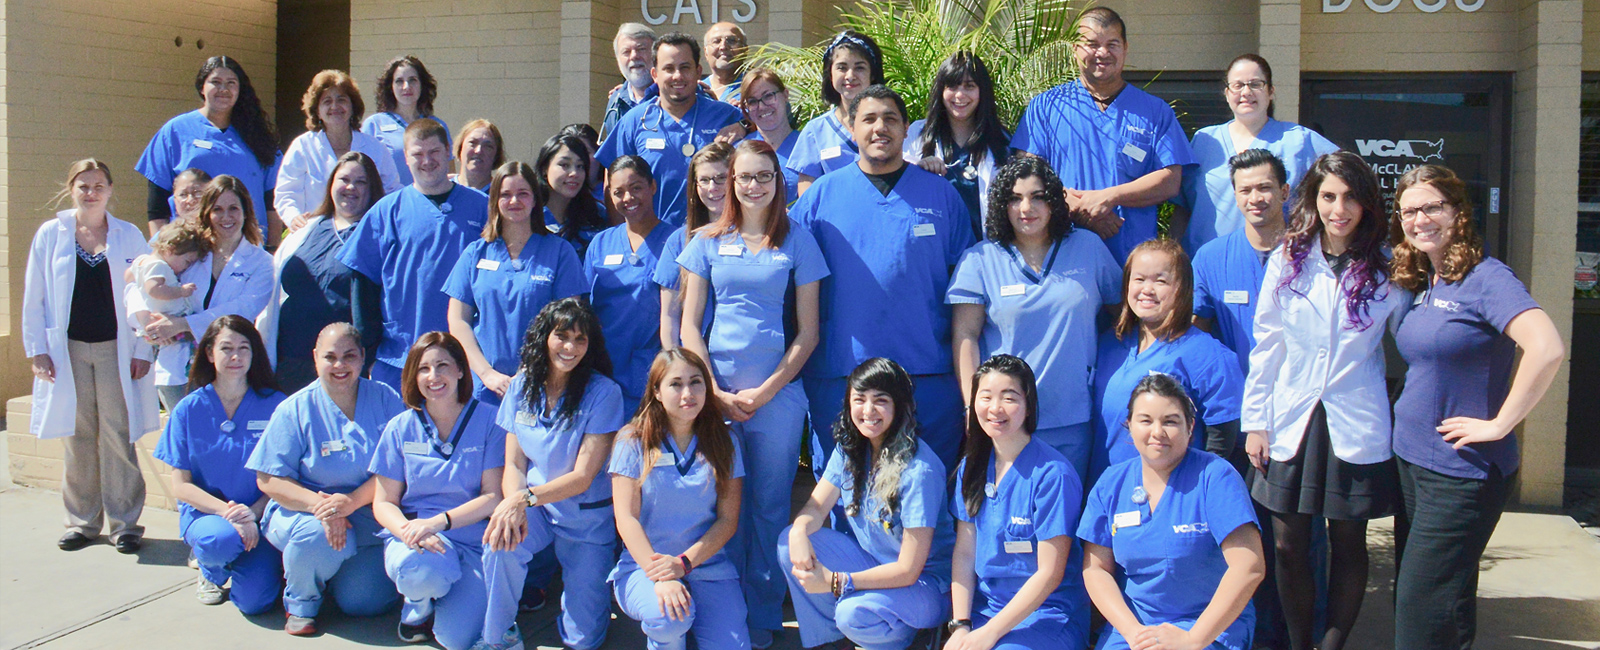 Team Picture of VCA McClave Animal Hospital